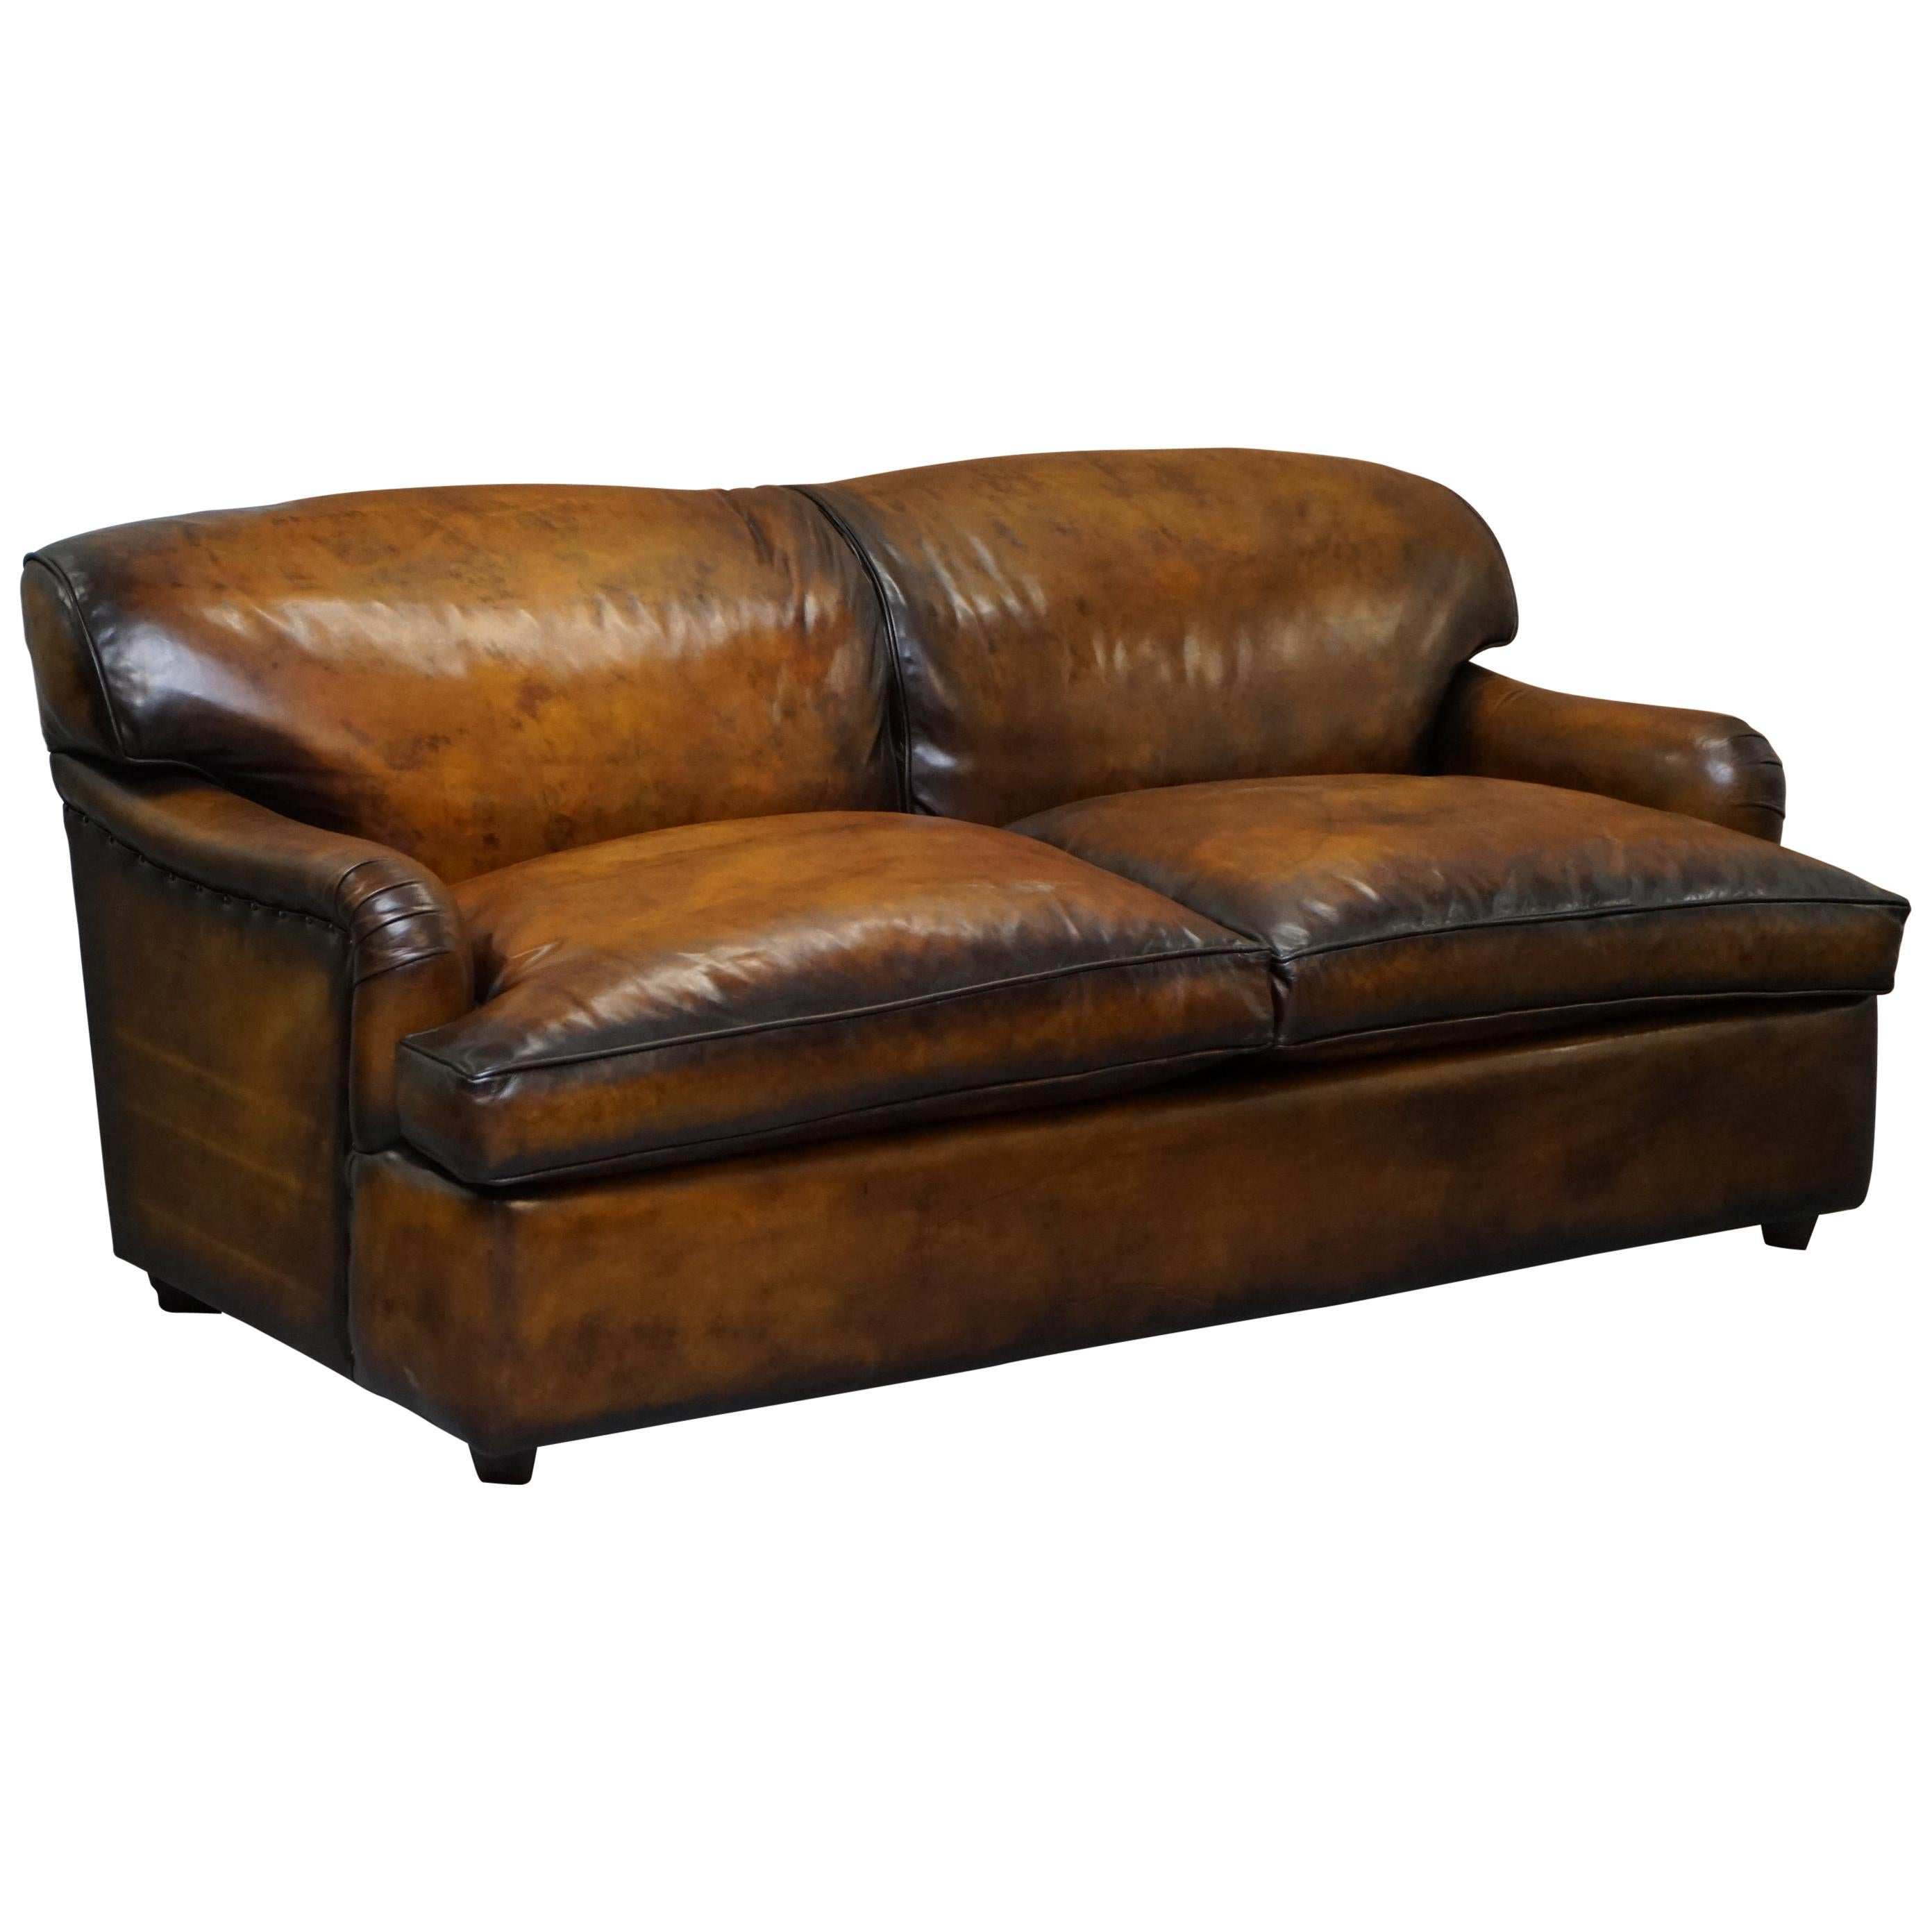 - Collin And Hayes Aged Brown Leather Sofa Bed With Feather Filled